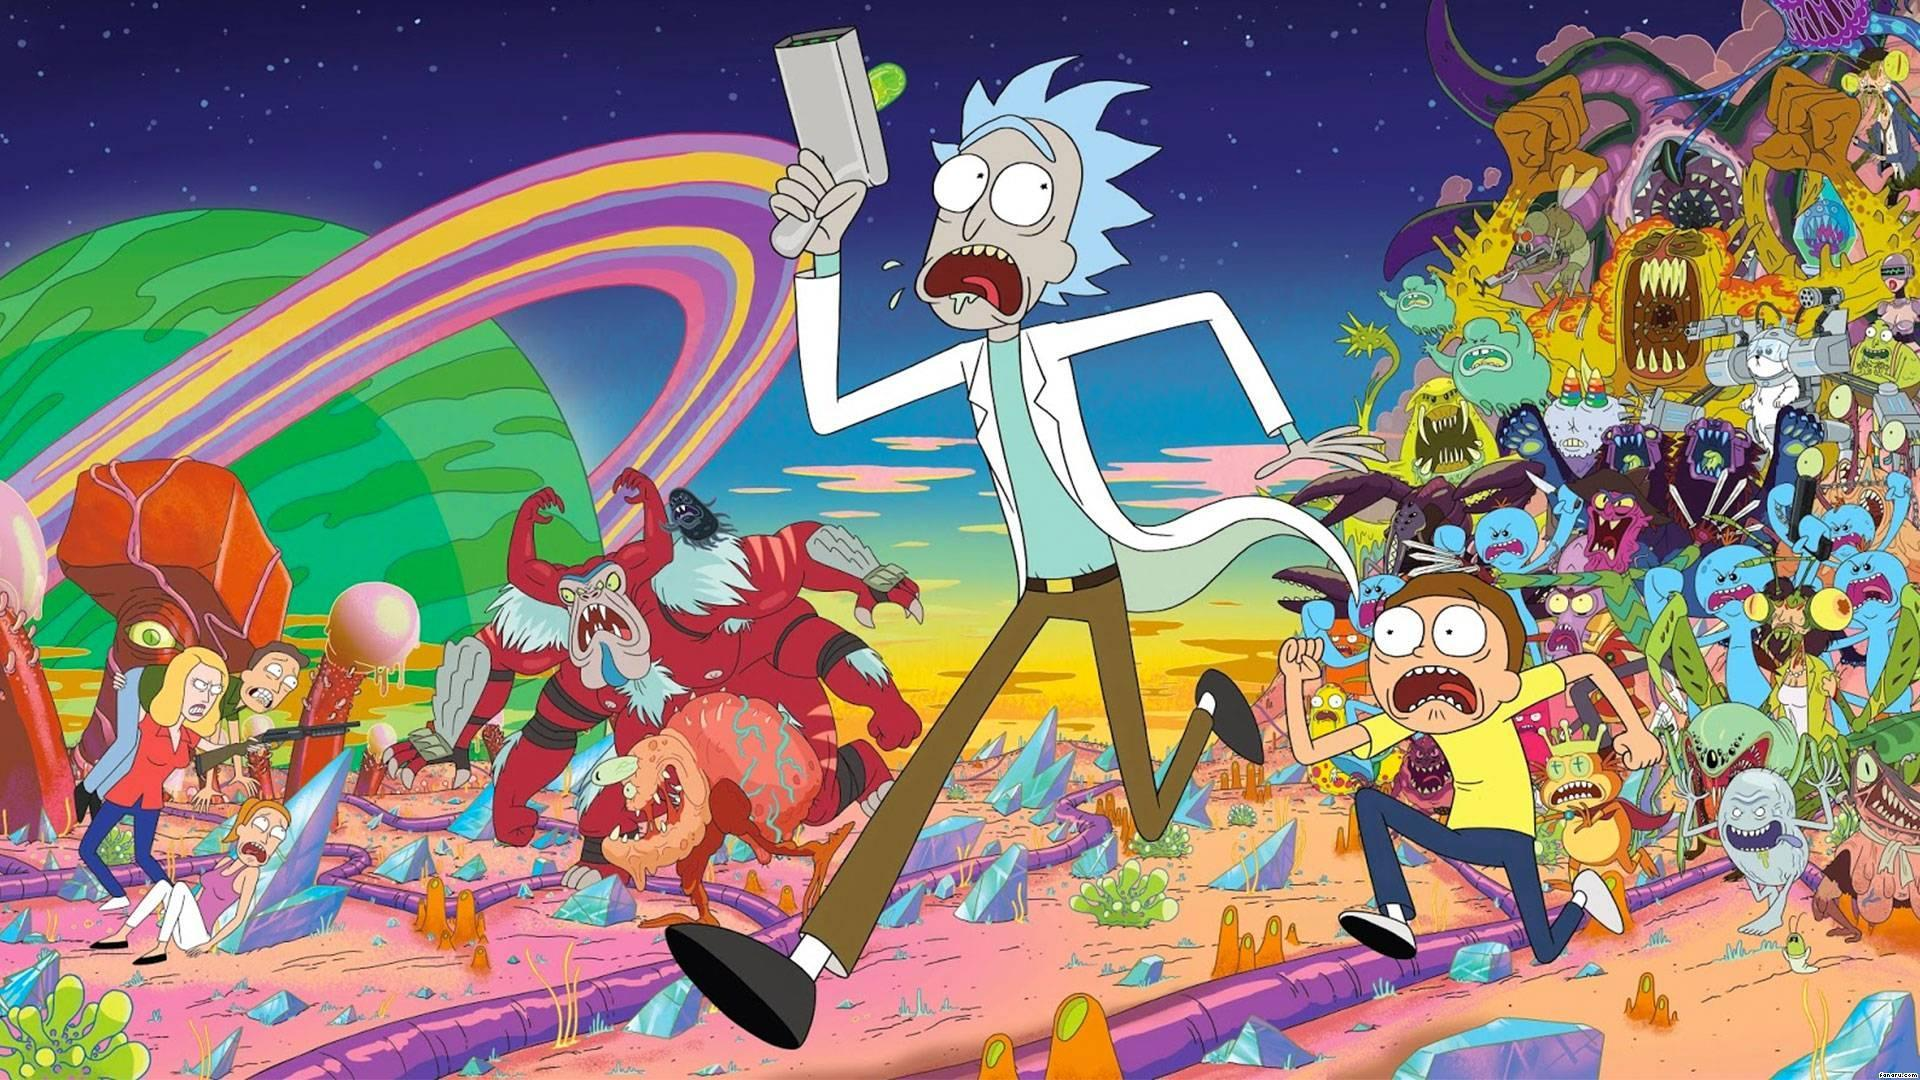 Rick and Morty season 4 not coming to Netflix, heading to Channel 4